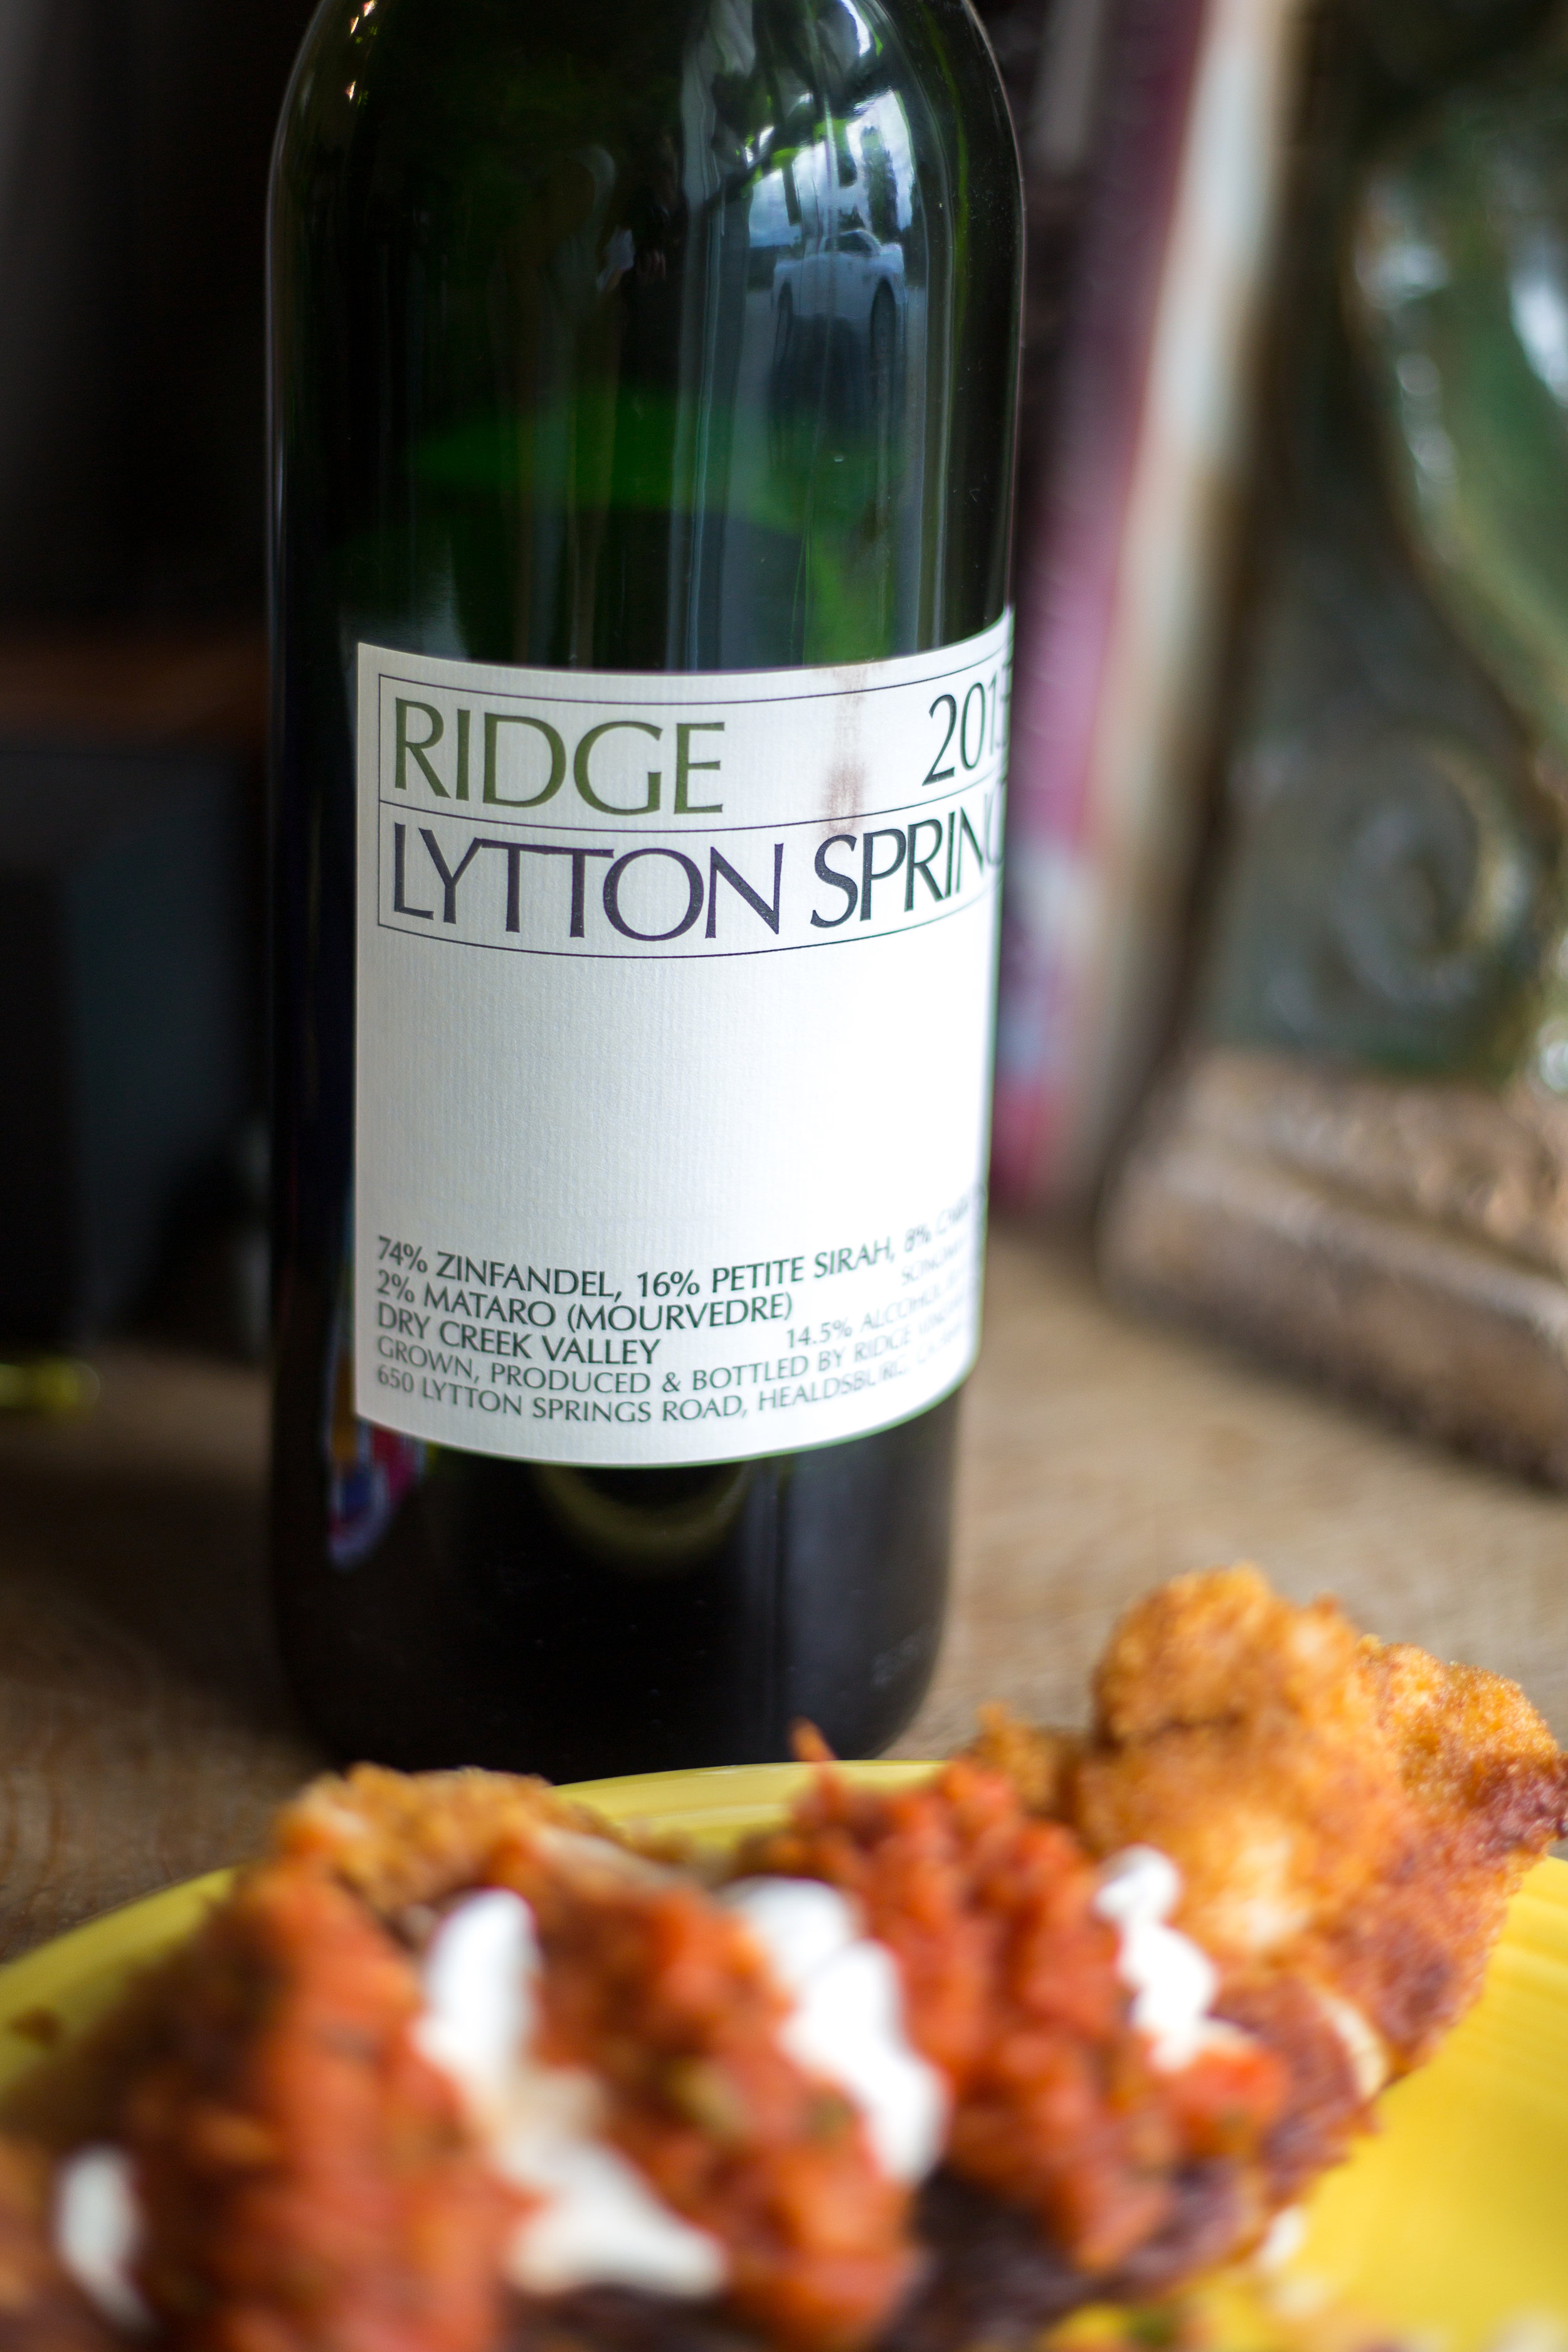 Ridge Lytton Springs Zinfandel wine